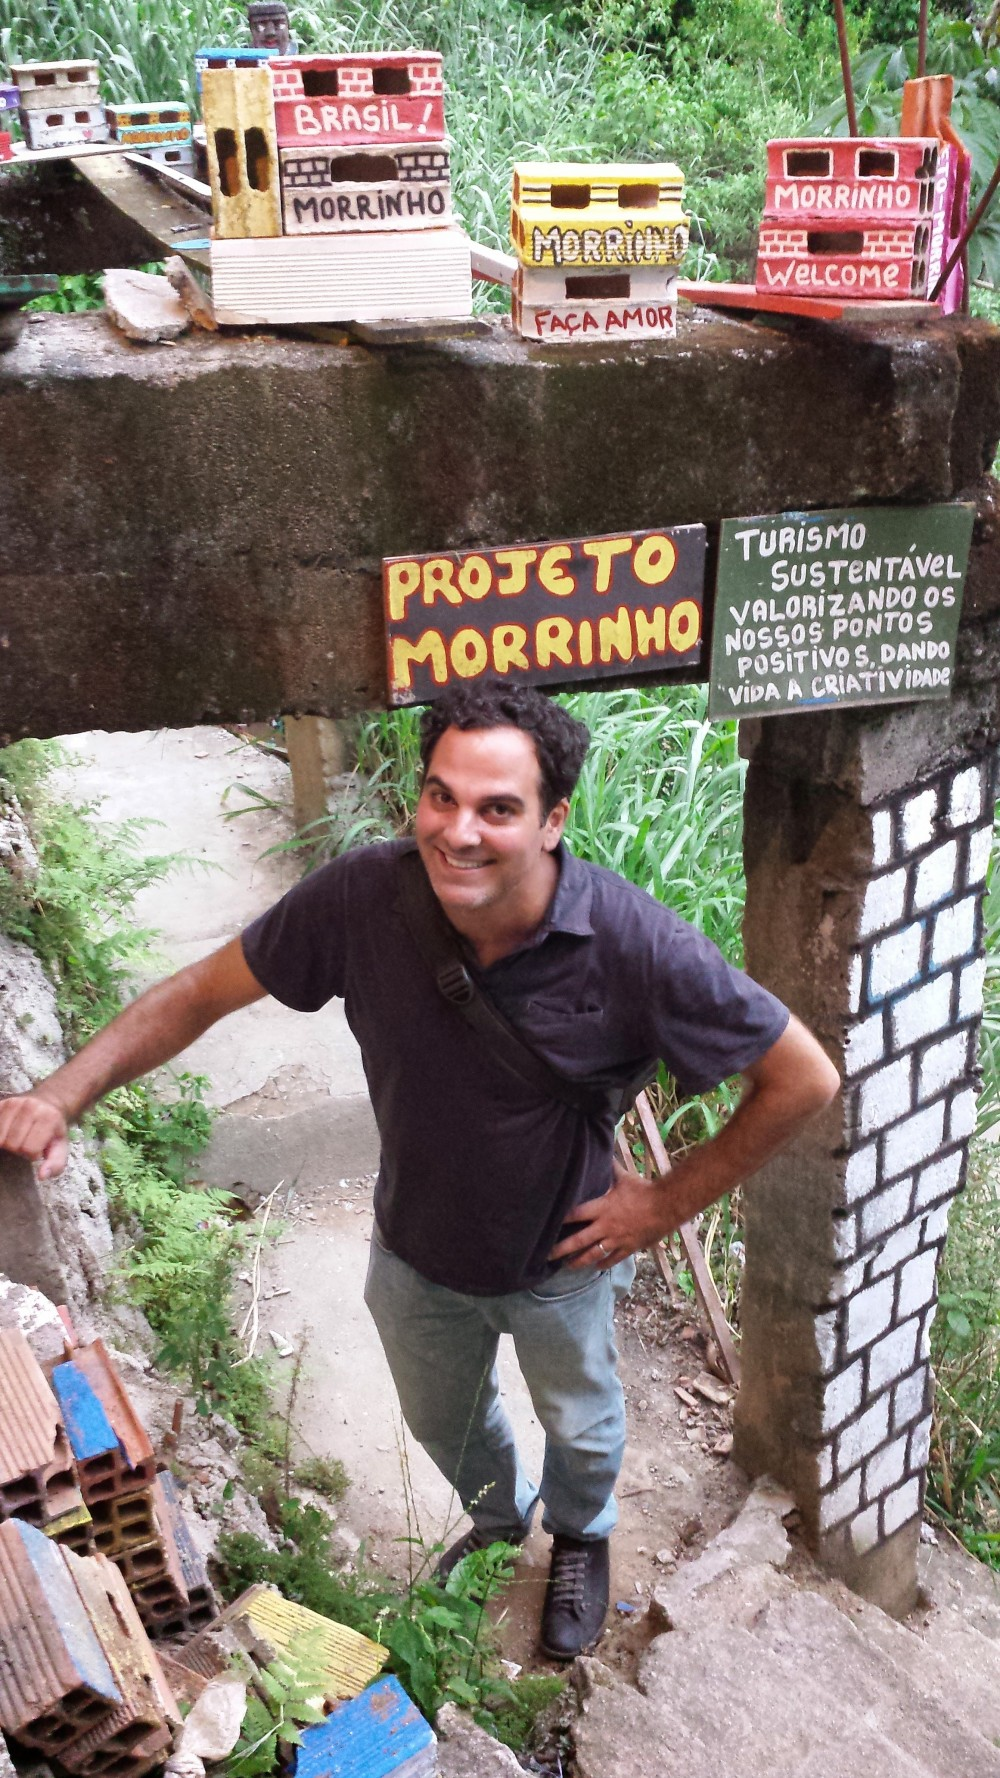 Anthropologist Alessandro Angelini at Project Morrinho.